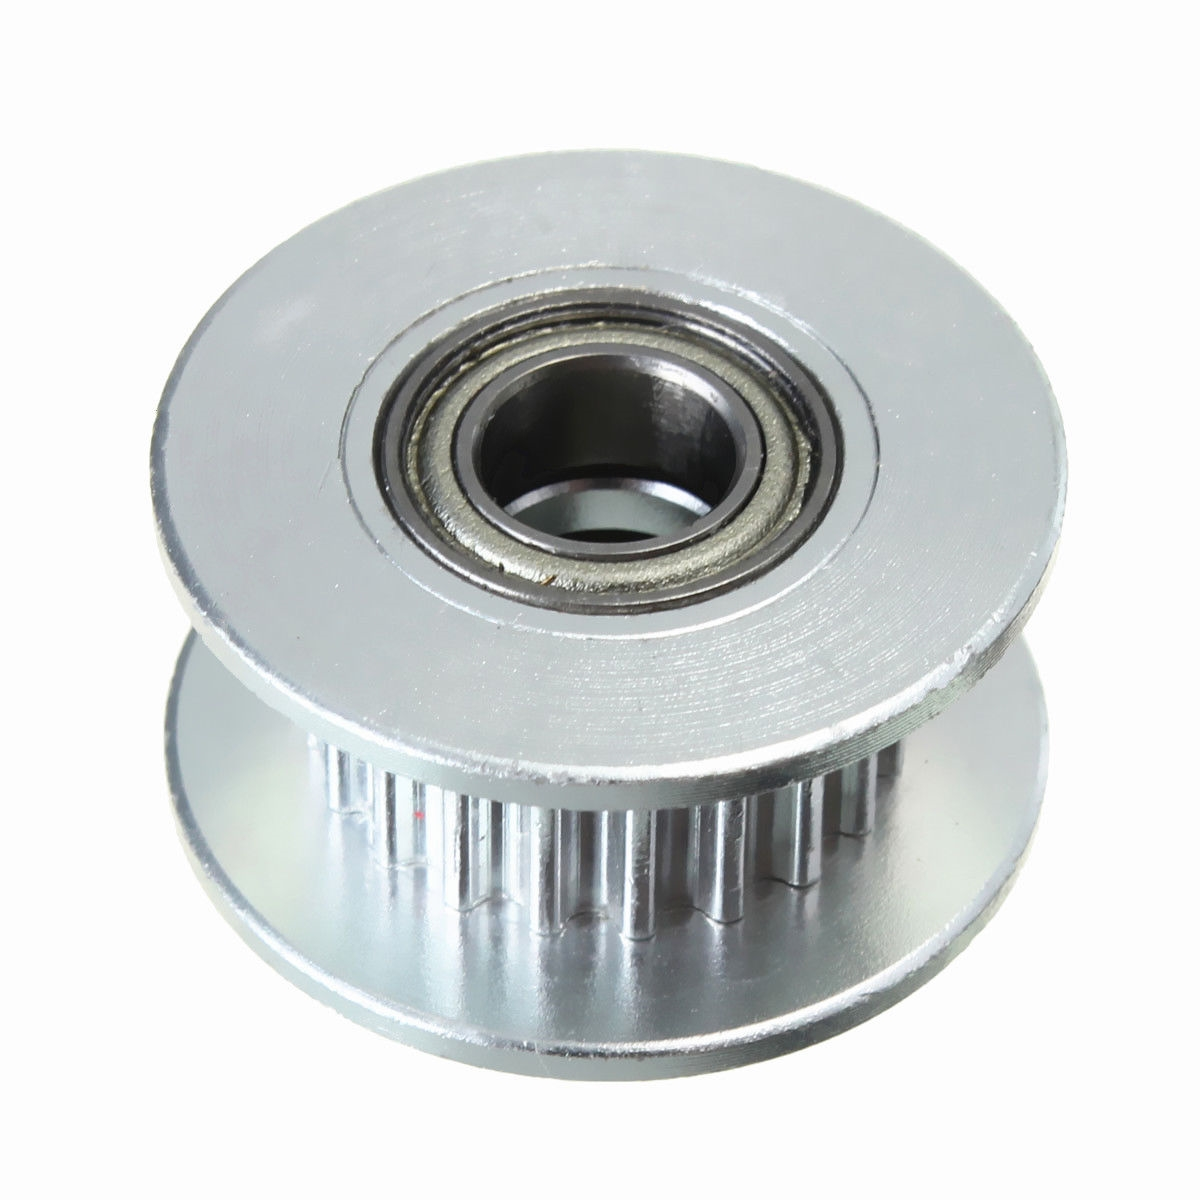 Aluminum GT2 20T 3*6mm Bore Timing Belt Idler Pulley With Bearing for 3D Printer